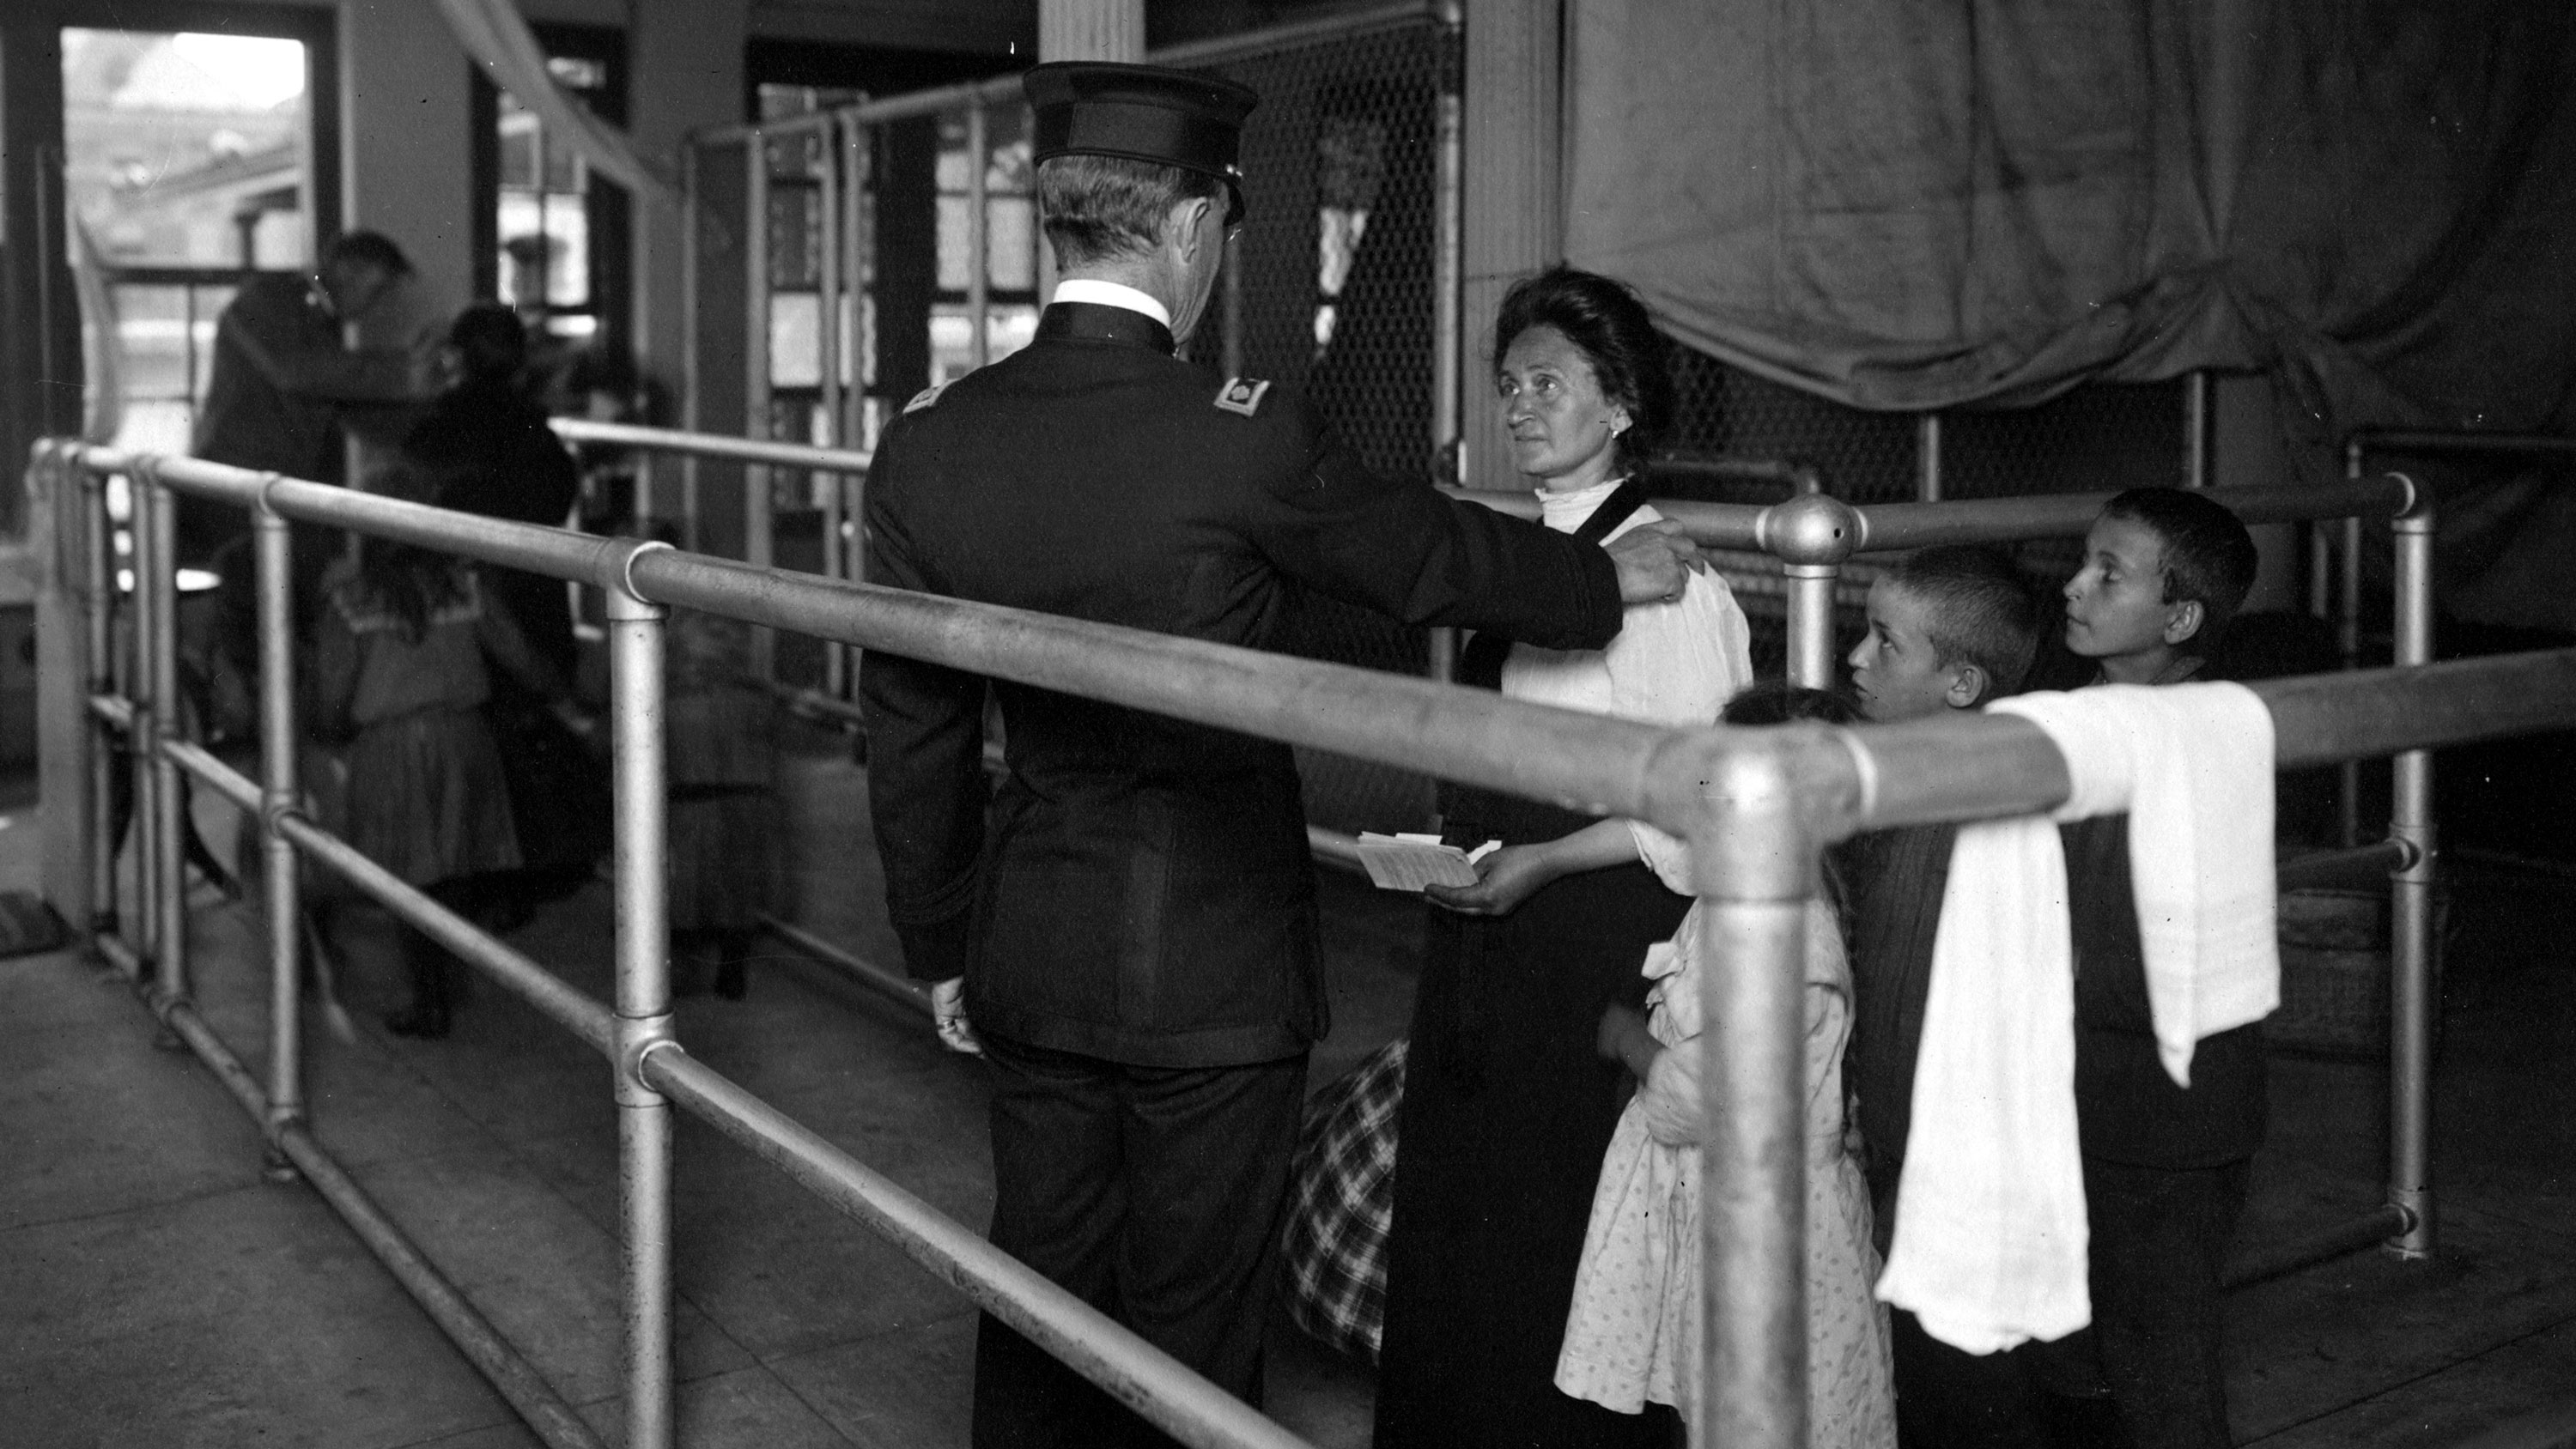 Most Immigrants Arriving at Ellis Island in 1907 Were Processed in a Few Hours